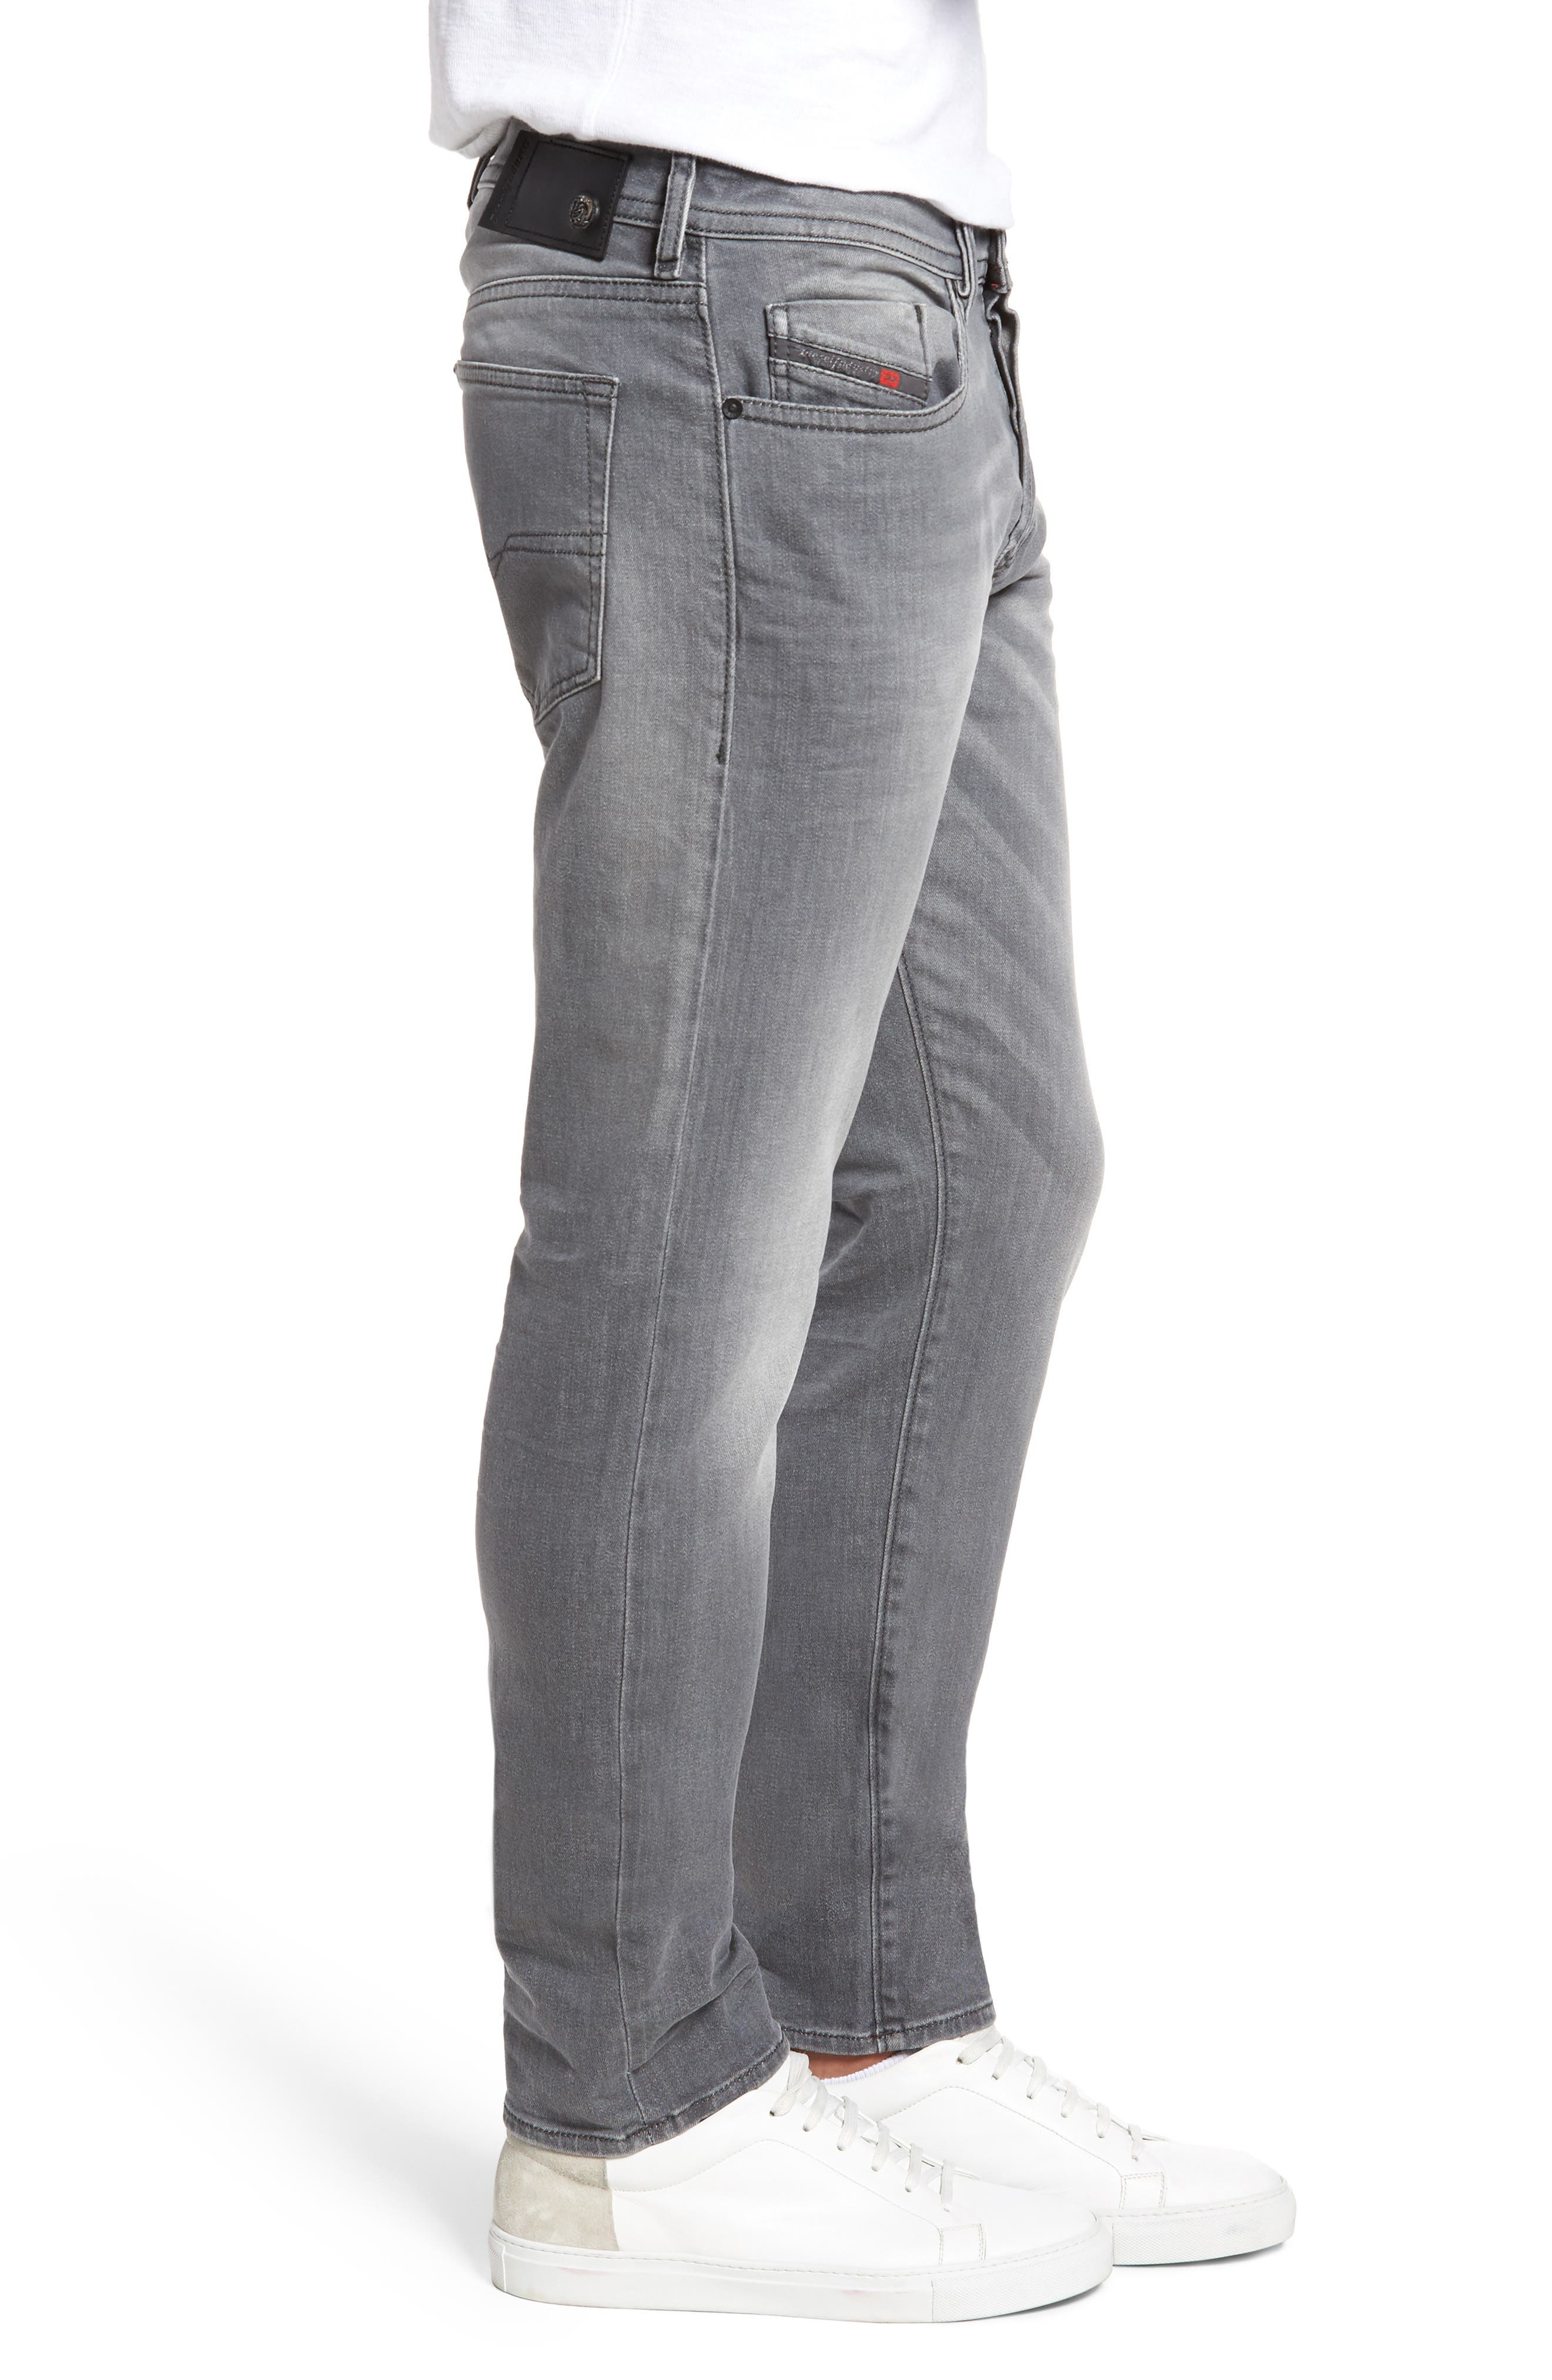 Buster Slim Straight Leg Jeans,                             Alternate thumbnail 3, color,                             084Hp